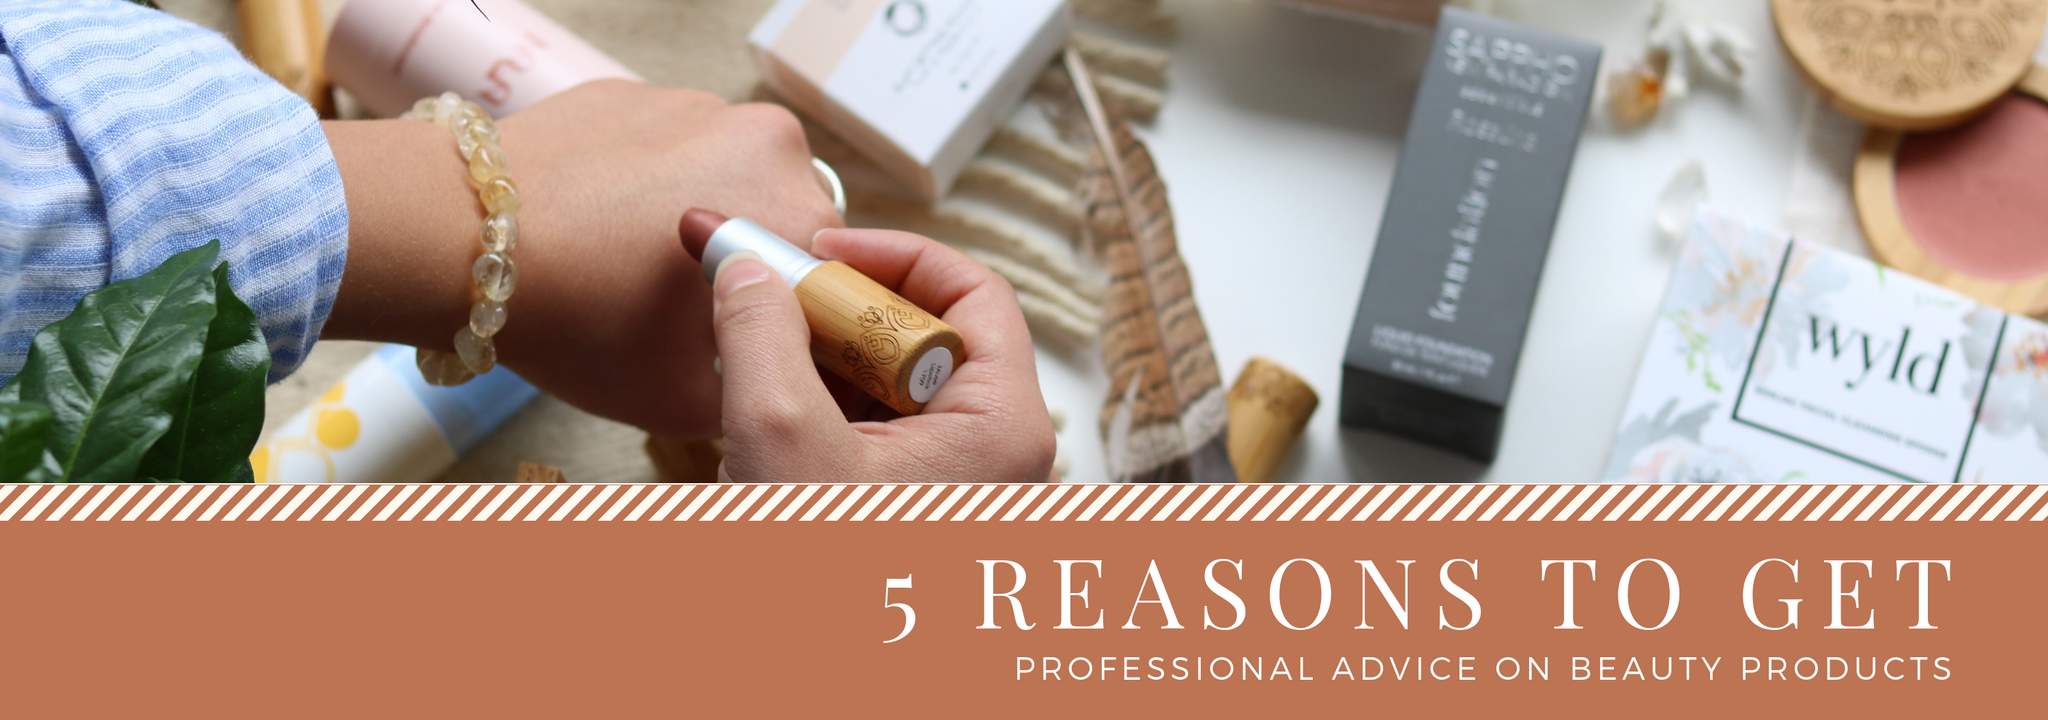 5 Reasons to Get Professional Advice on Beauty Products